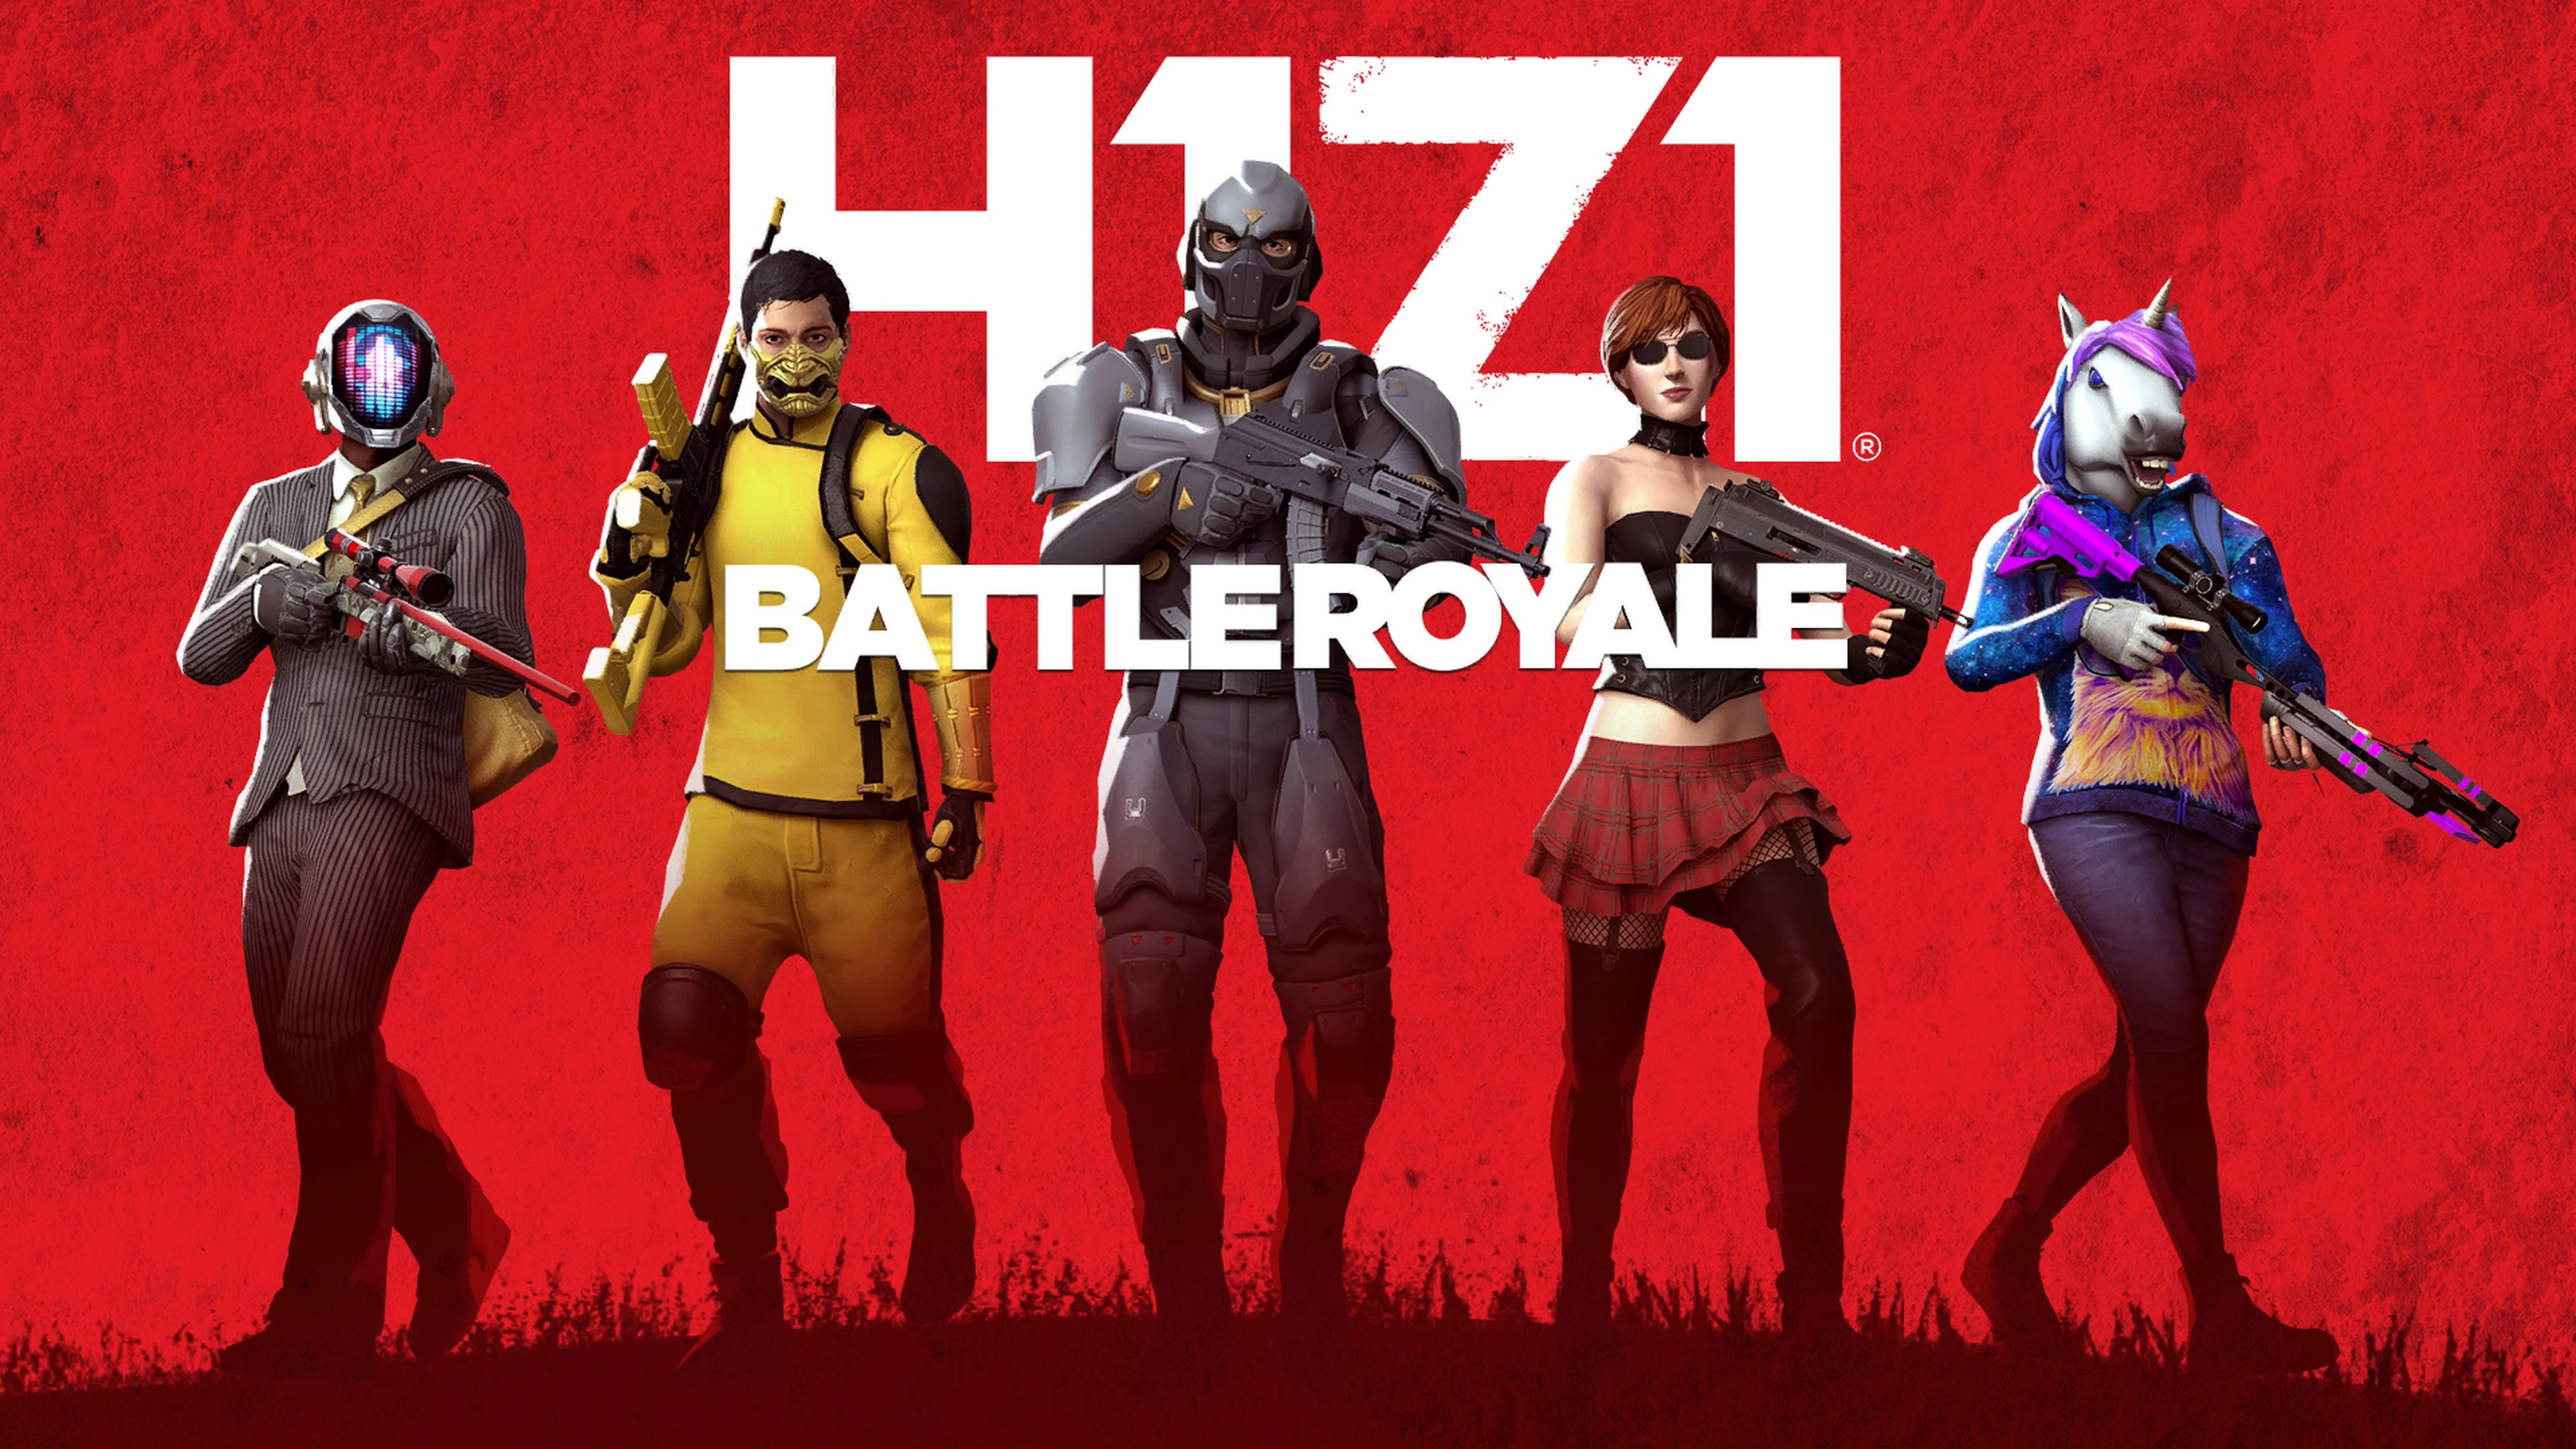 Backpack Skins H1Z1 h1z1: battle royale has gone through many changes for the